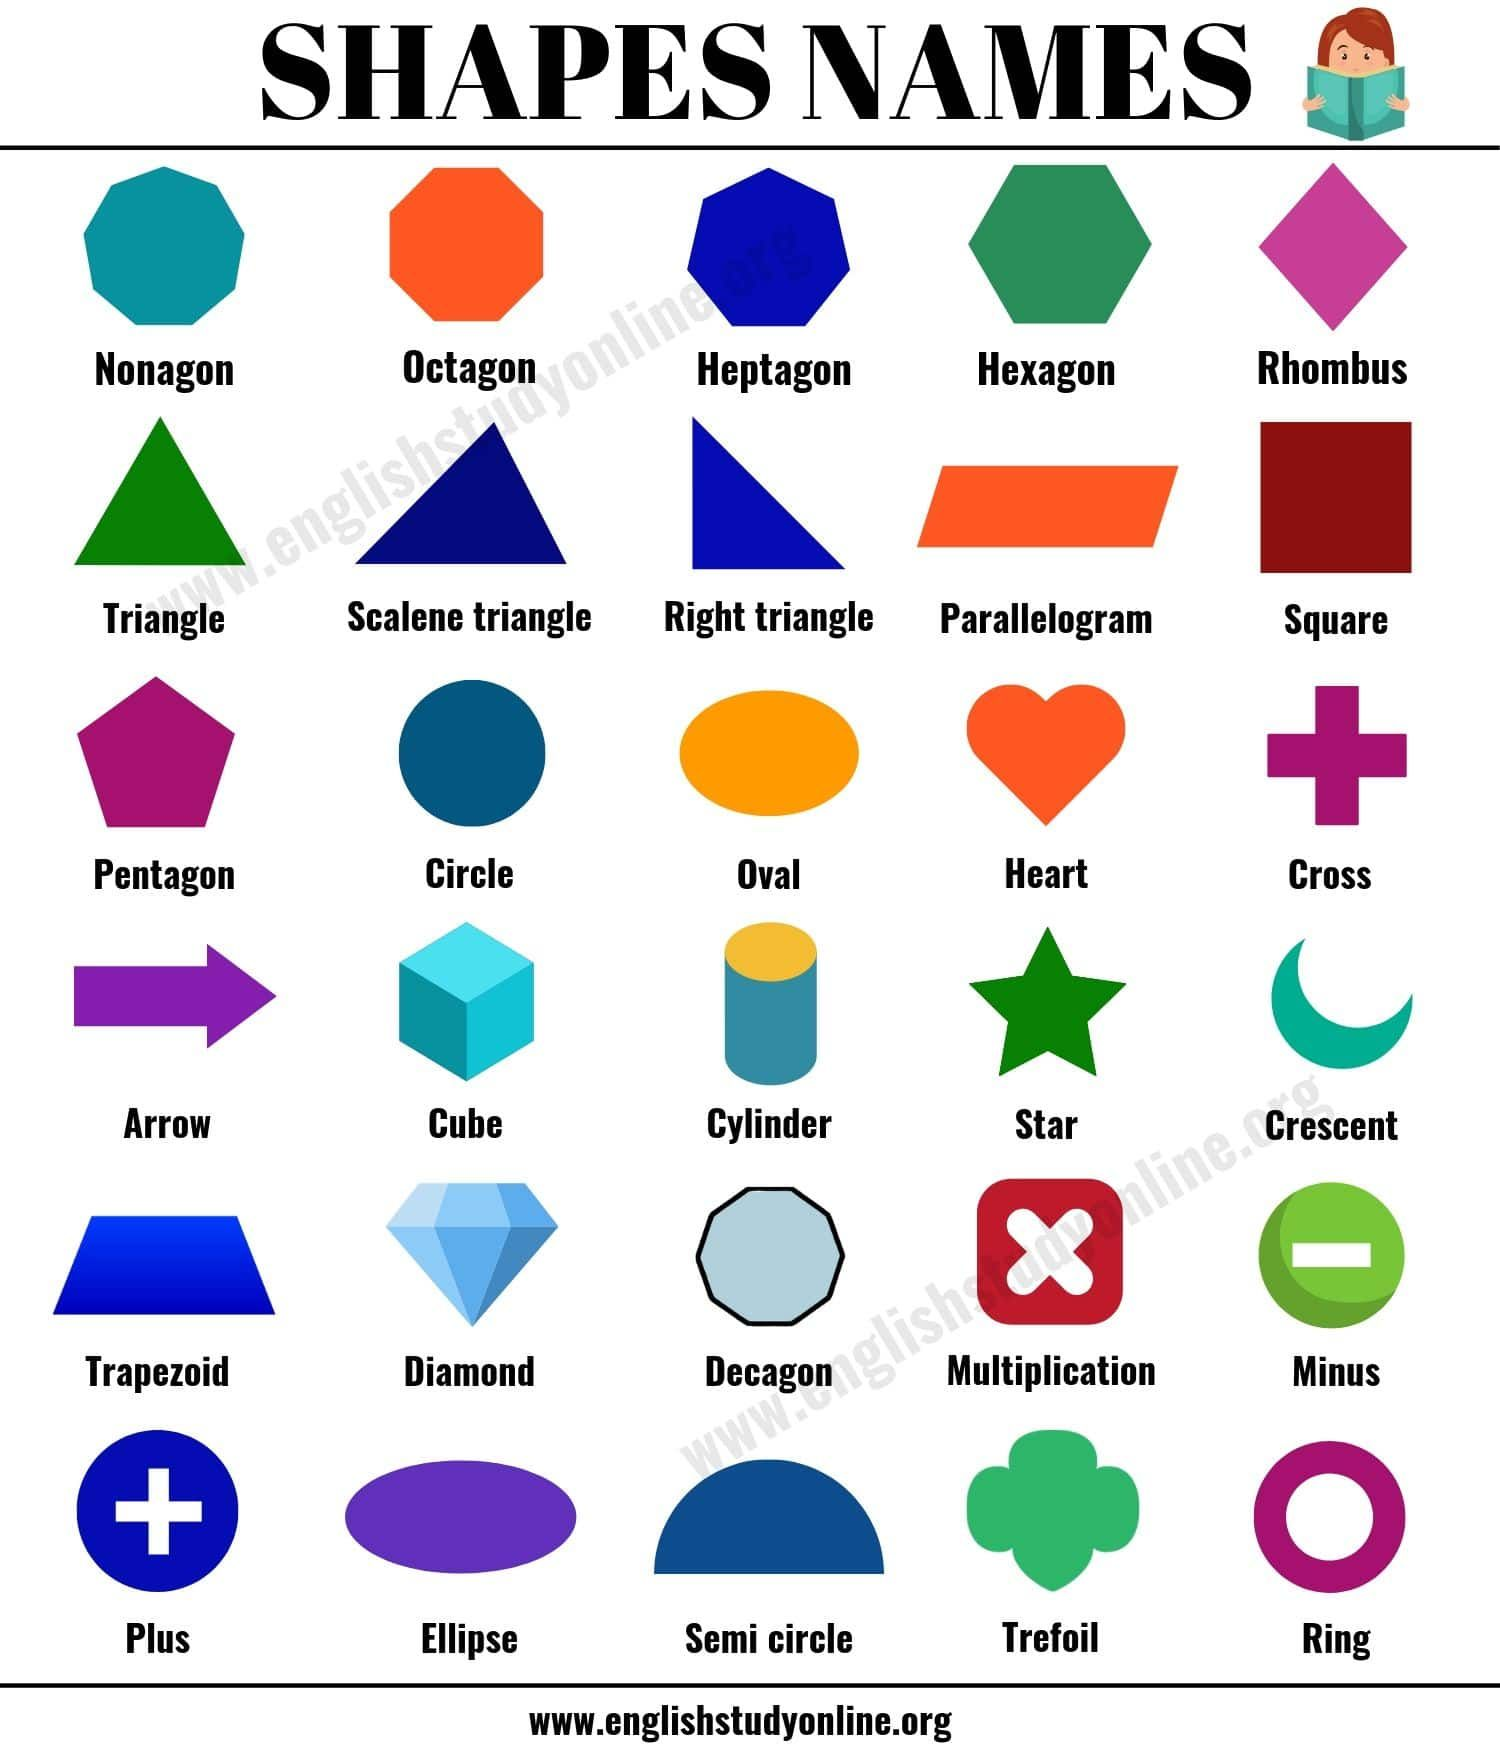 Shapes Names: 30 Popular Names of Shapes with ESL Image